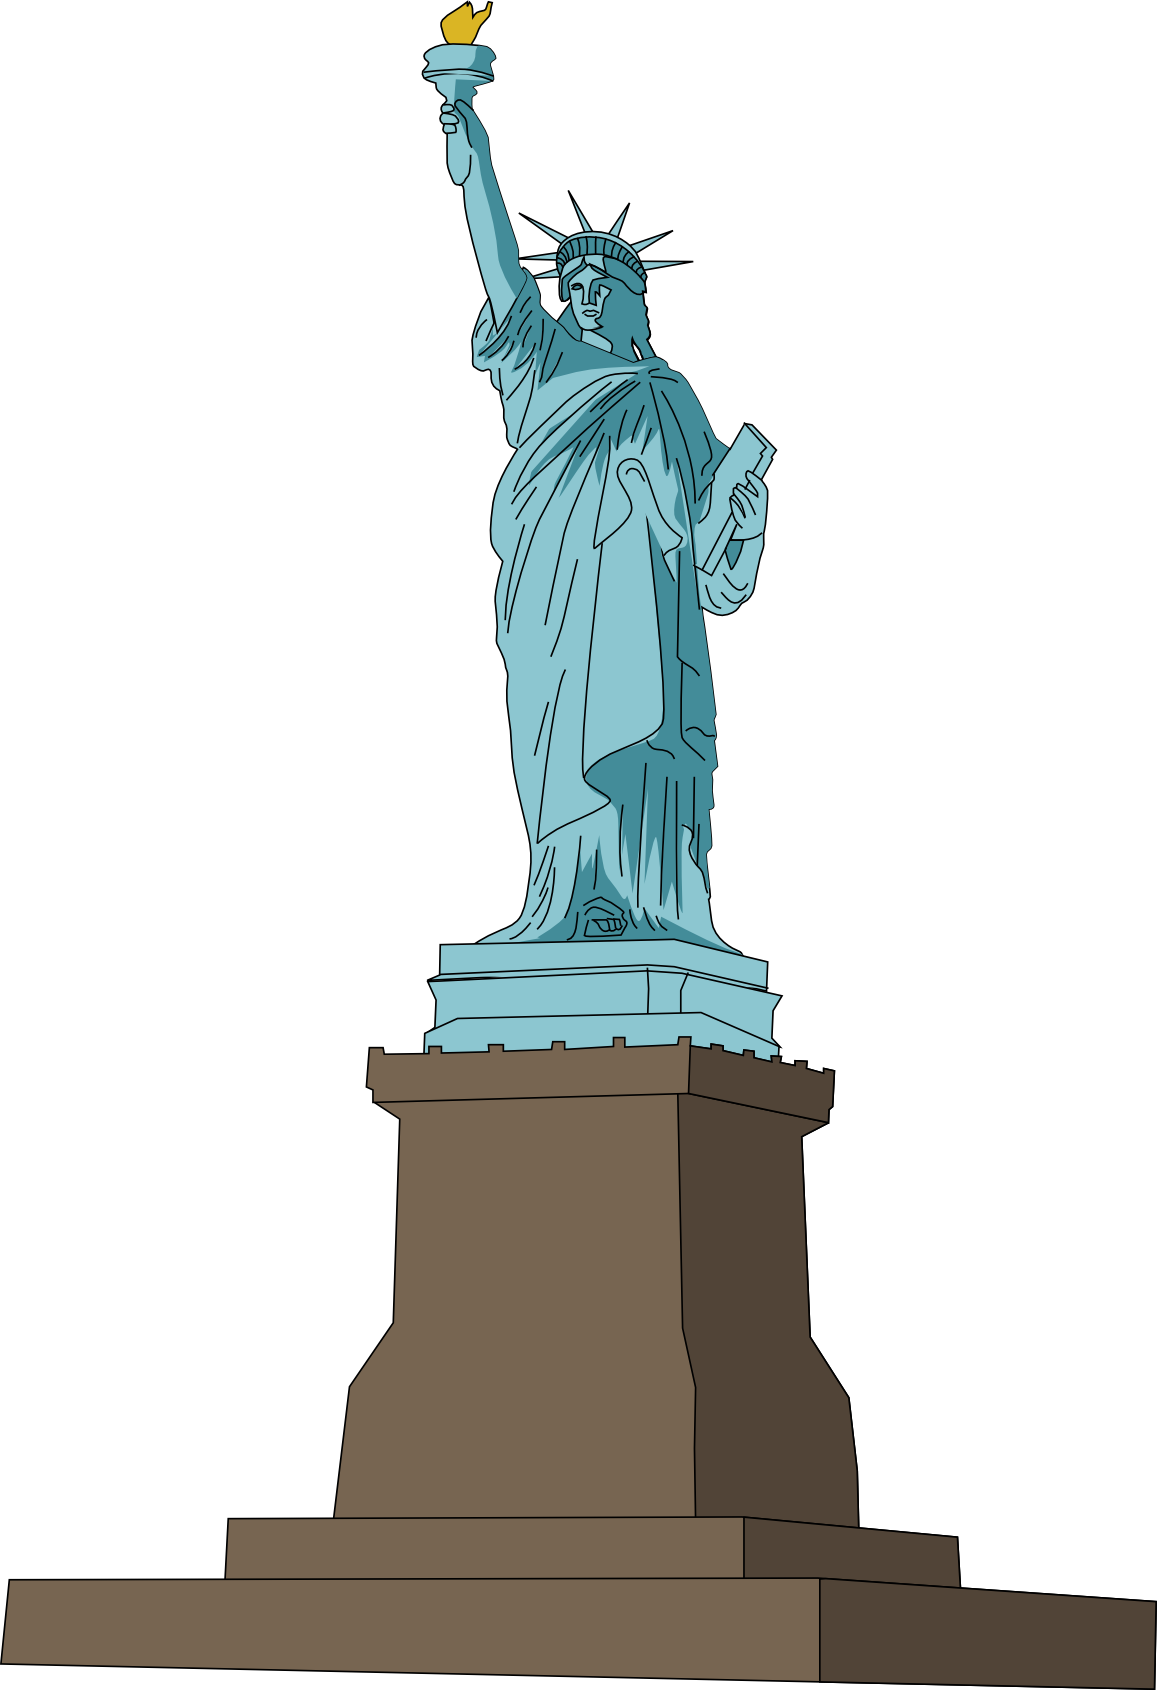 Liberty statue clipart png. Collection of high